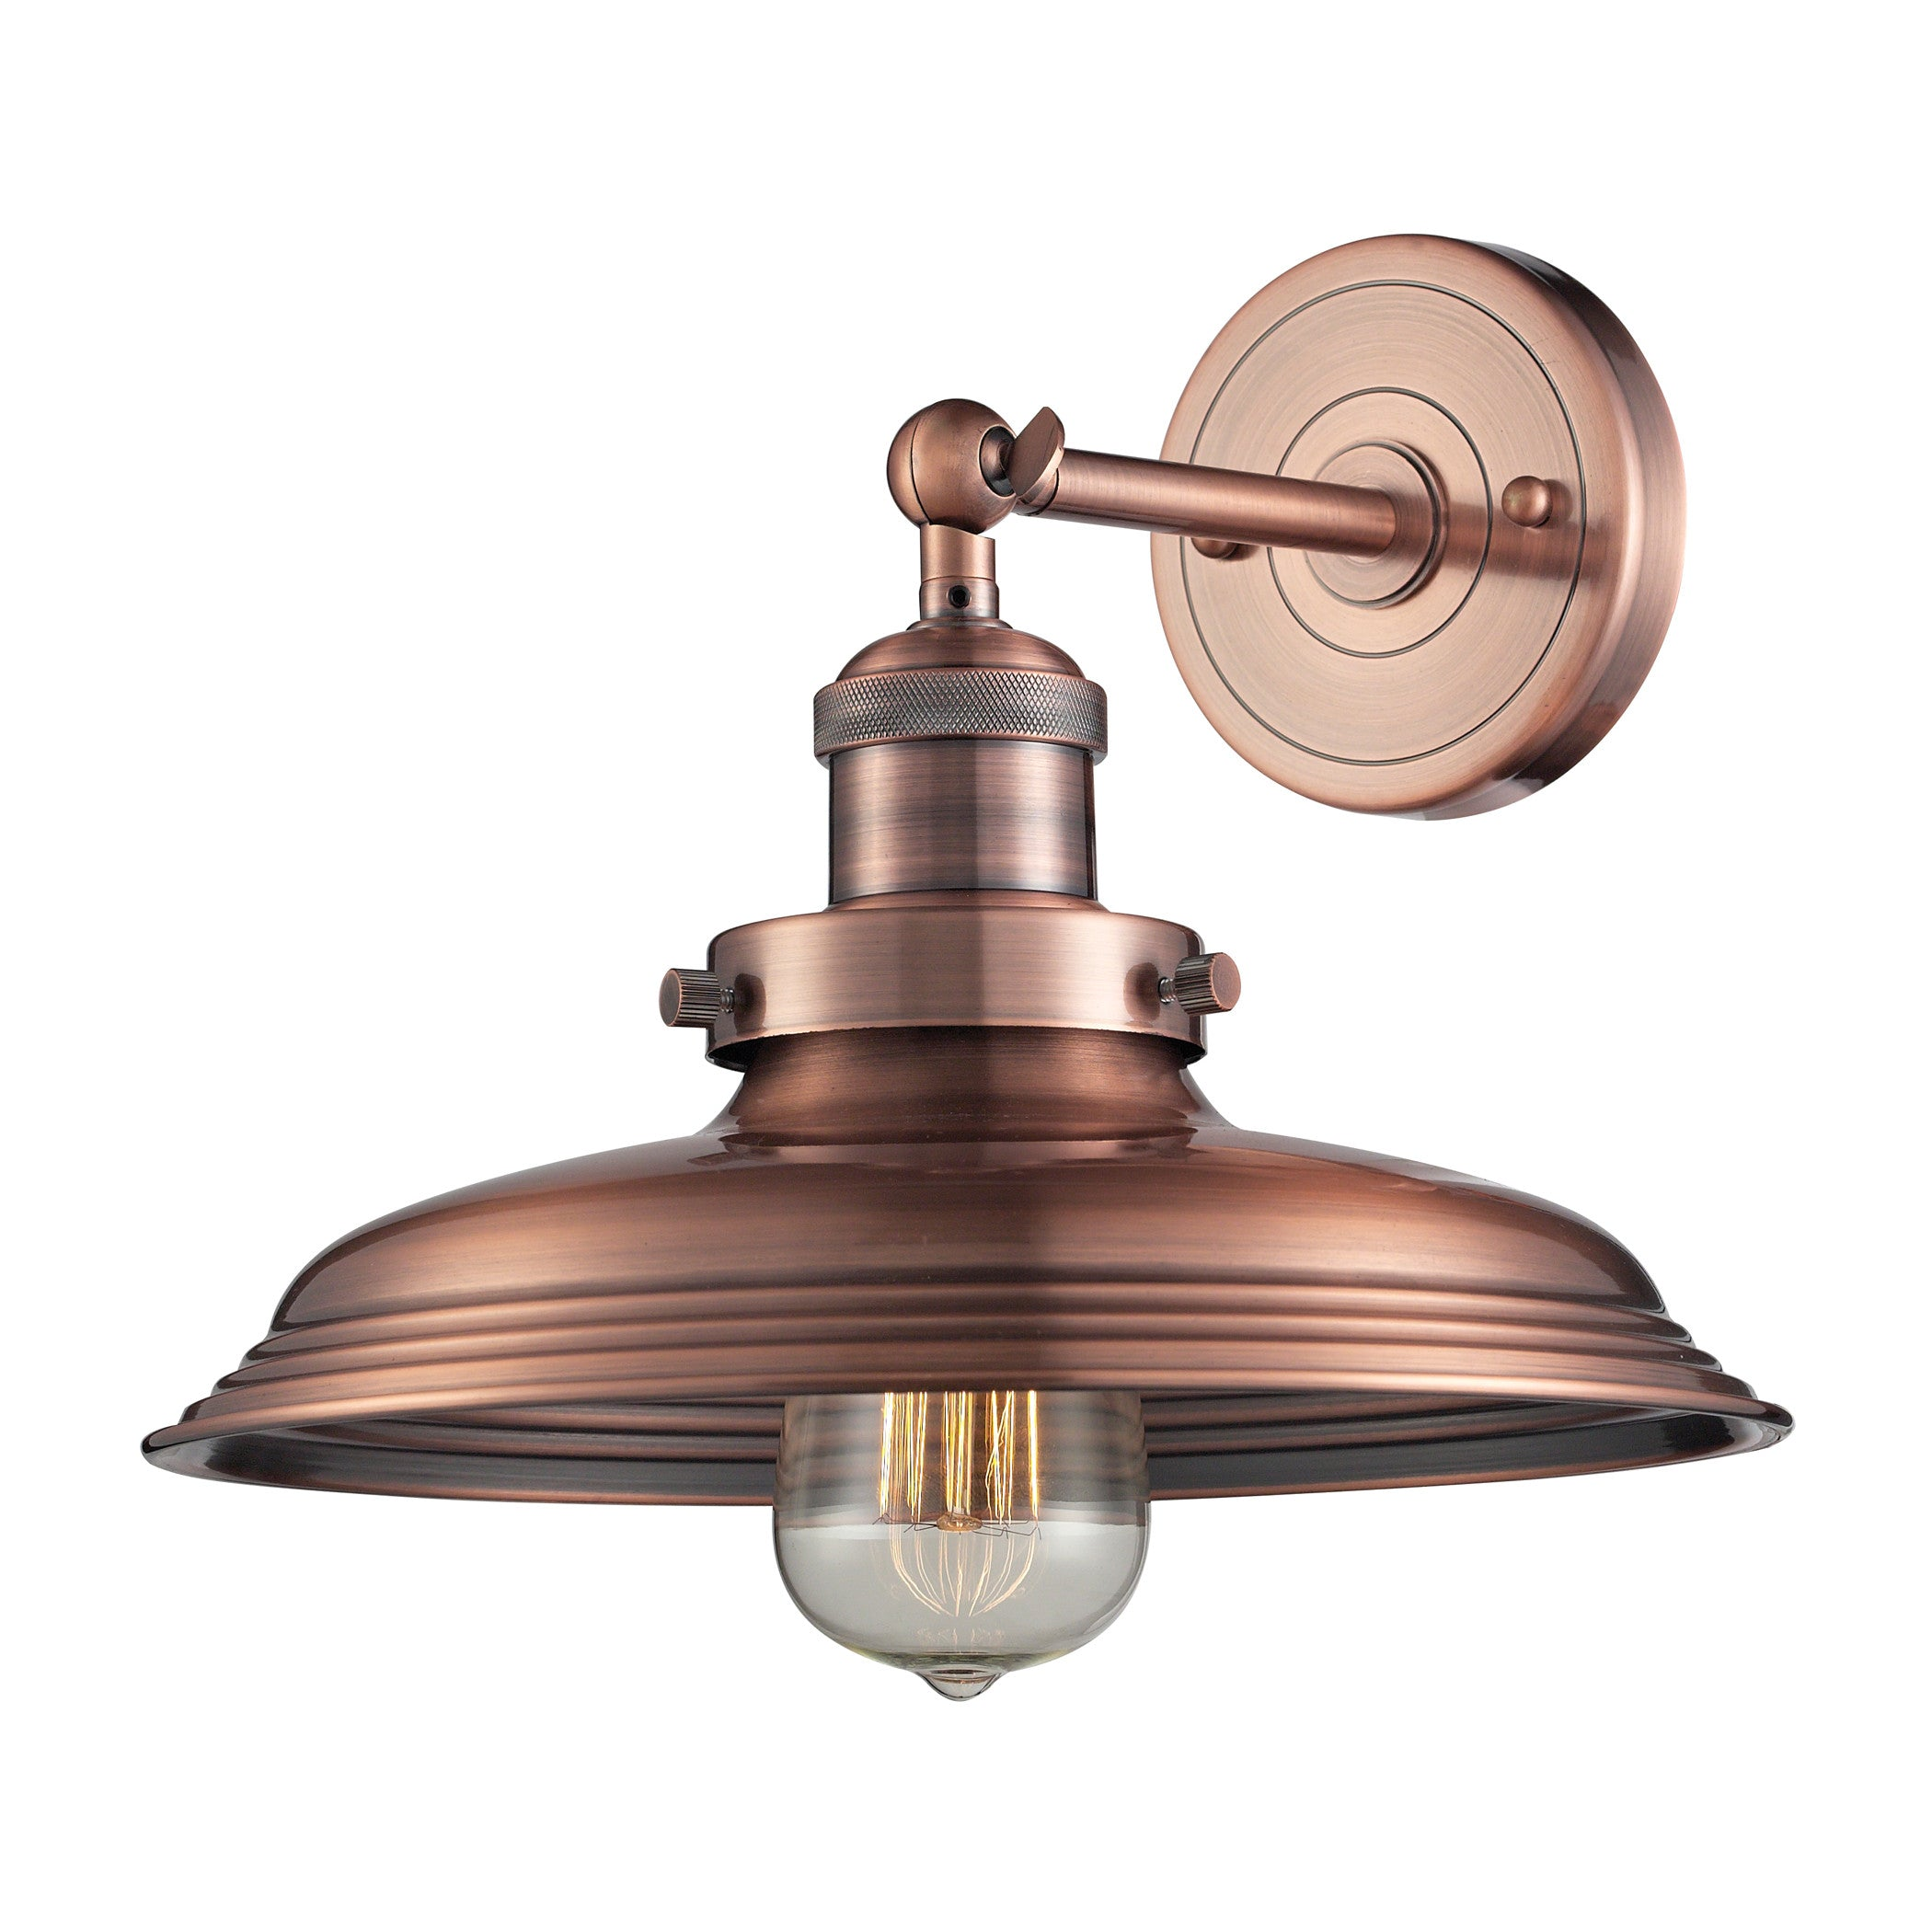 Newberry Wall Sconce in Antique Copper by ELK Lighting 55030-1